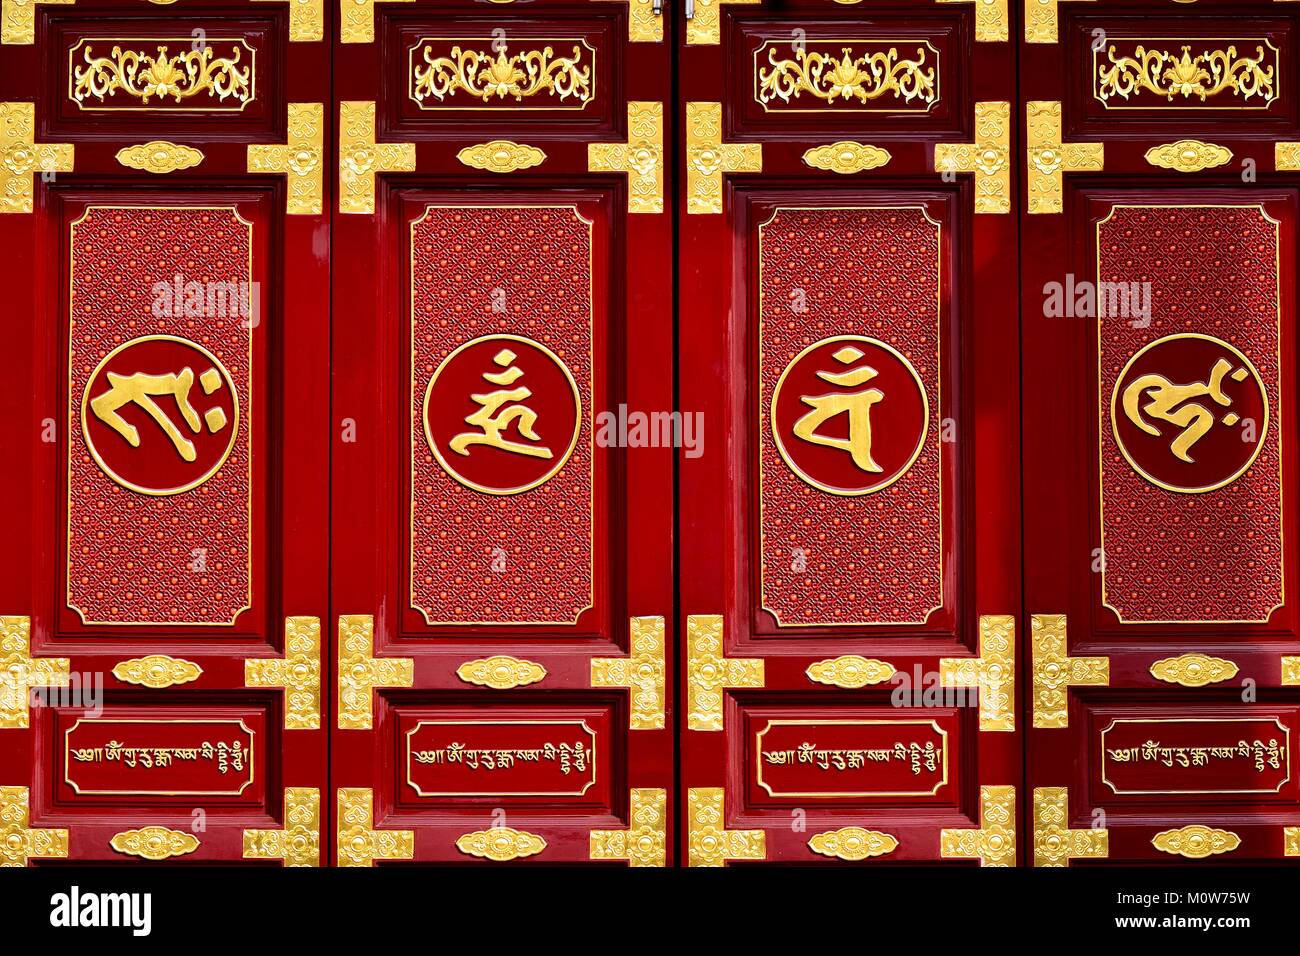 Chinese Old Wooden Door Photos Chinese Old Wooden Door Images  # Porte Laque Chinois